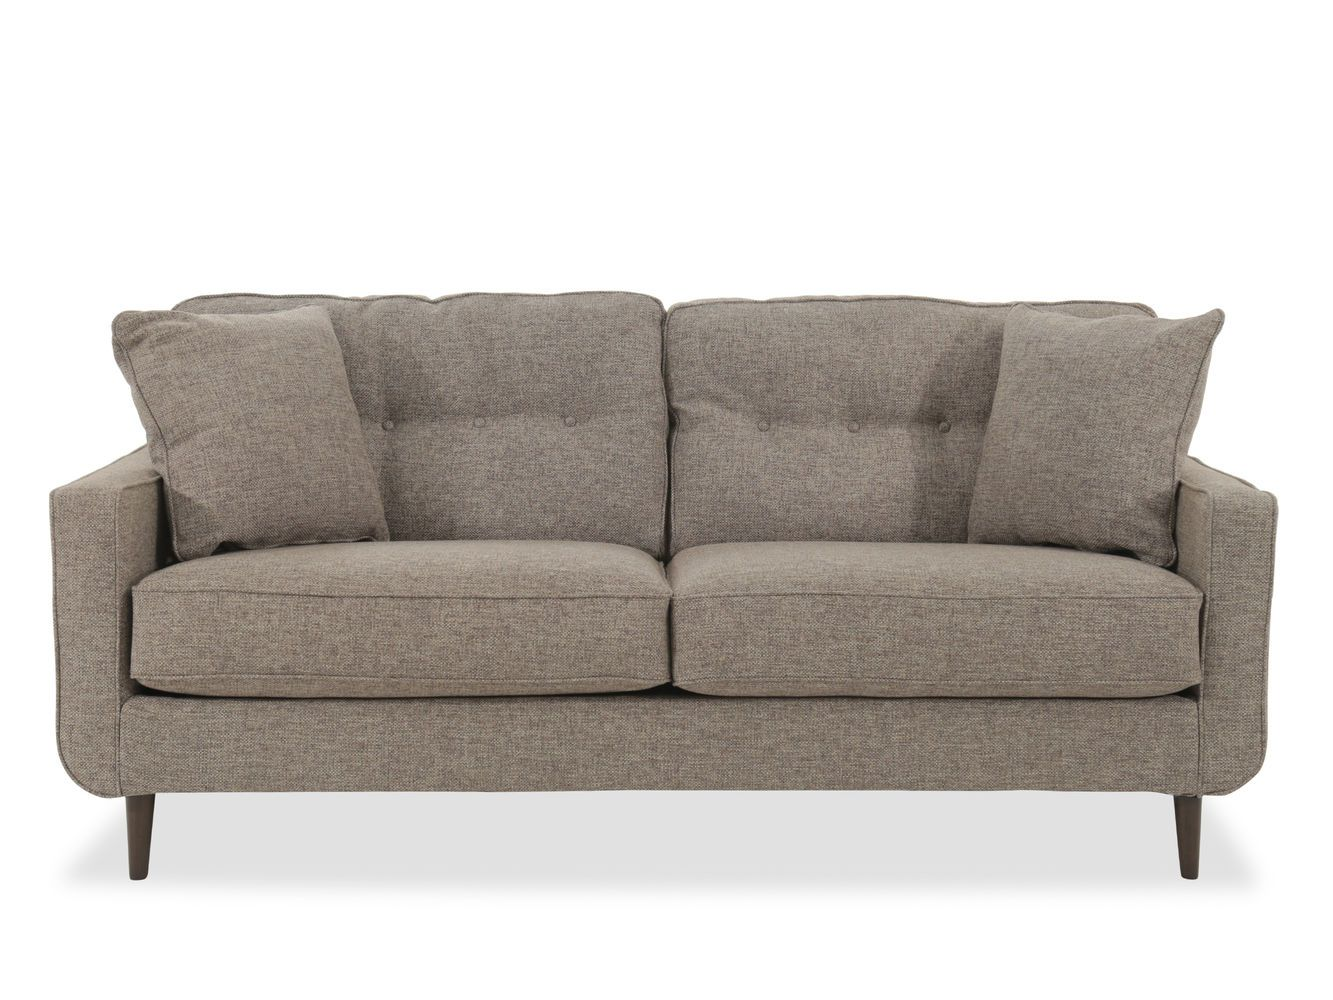 Best Modern Button Tufted 79 Sofa In Jute Mathis Brothers 400 x 300